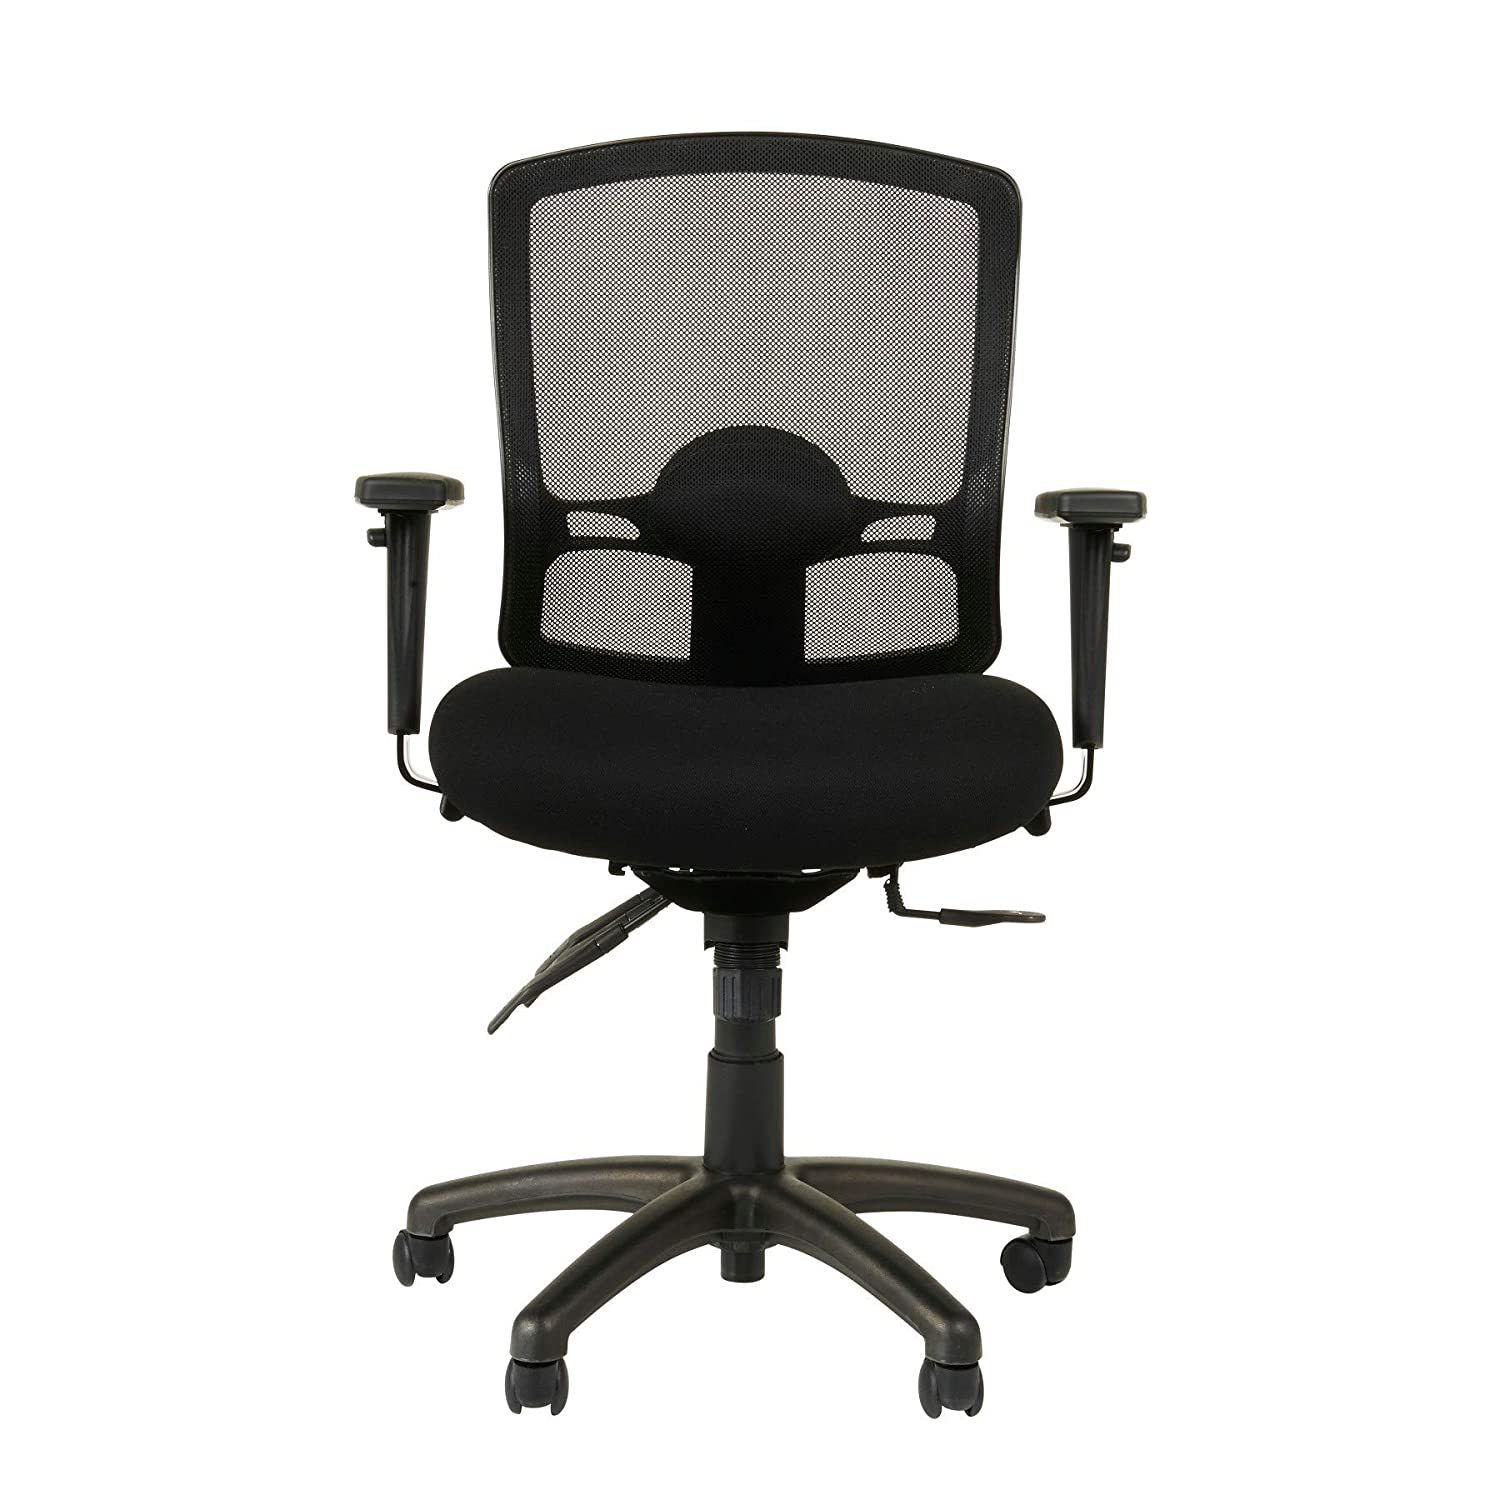 comfortable ergonomic office chair for petite person